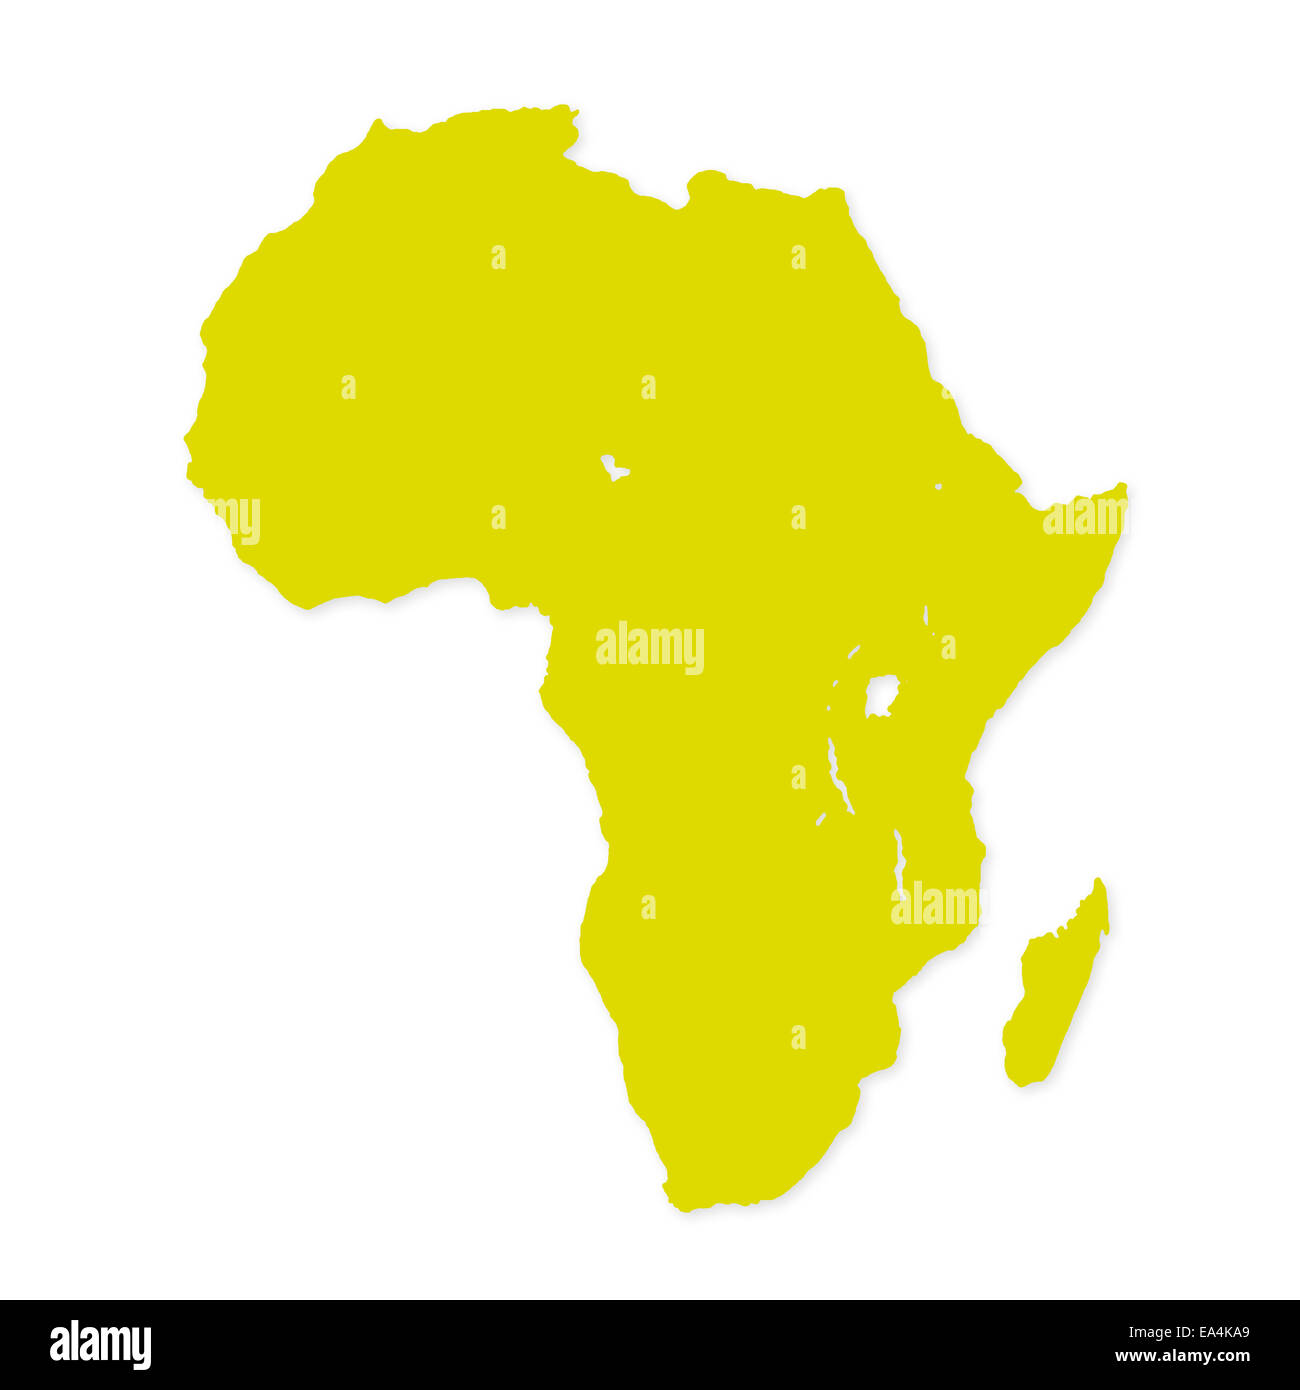 Image of modern Africa map illustration - Stock Image